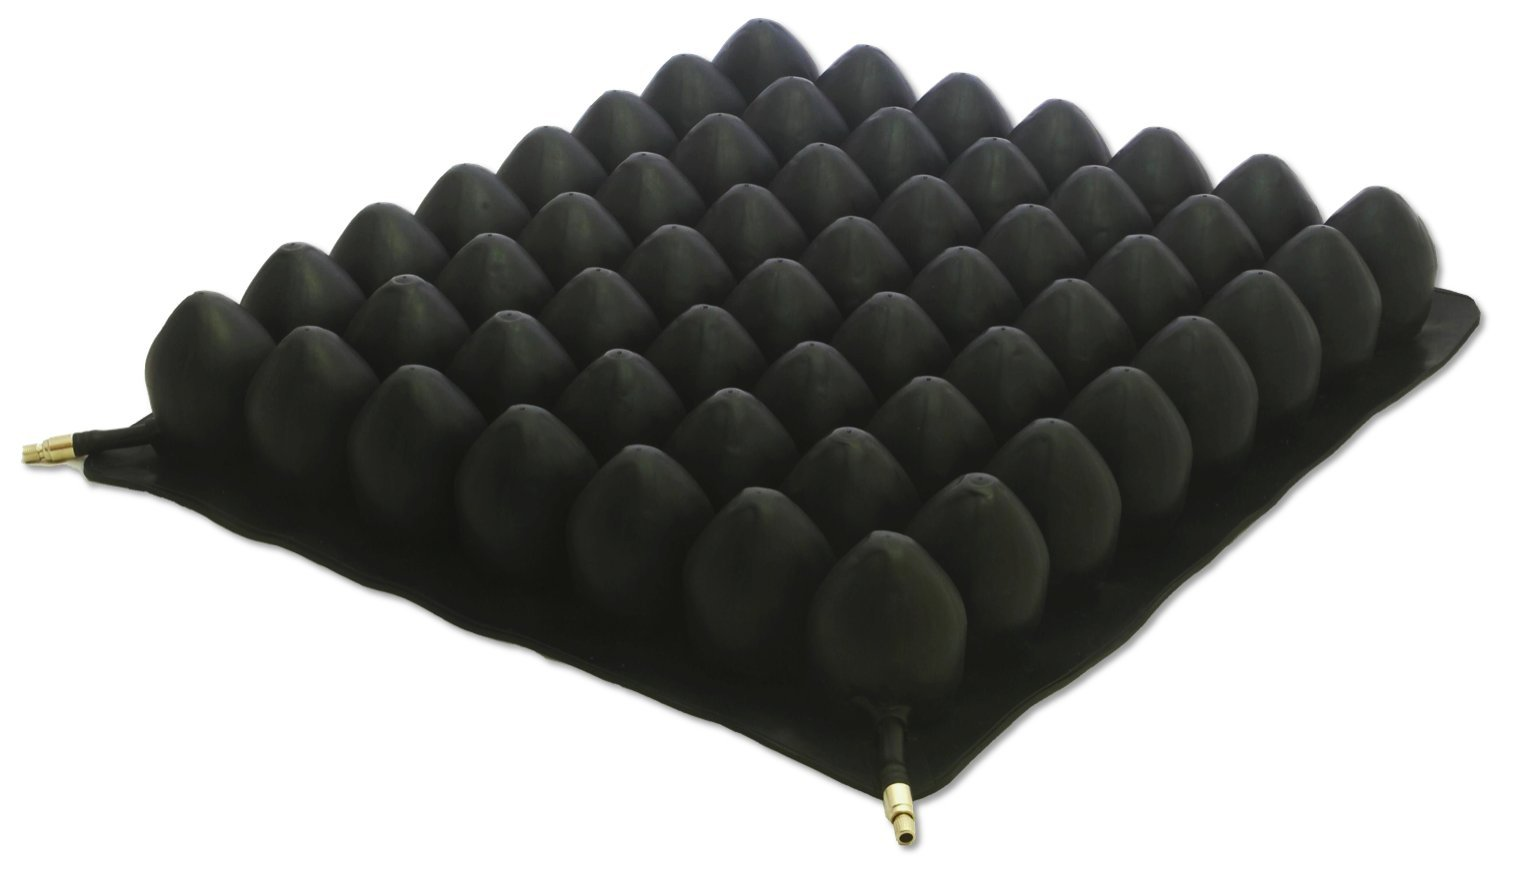 Wheelchair Cushion Air Seat Cushion Comfort Seat Cushion for Pressure Relief Prevent Bedsores Two Inflate Sections 7x8 Cells Made of Neoprene Breeze Style Inflatable plus Durable Chair Pad